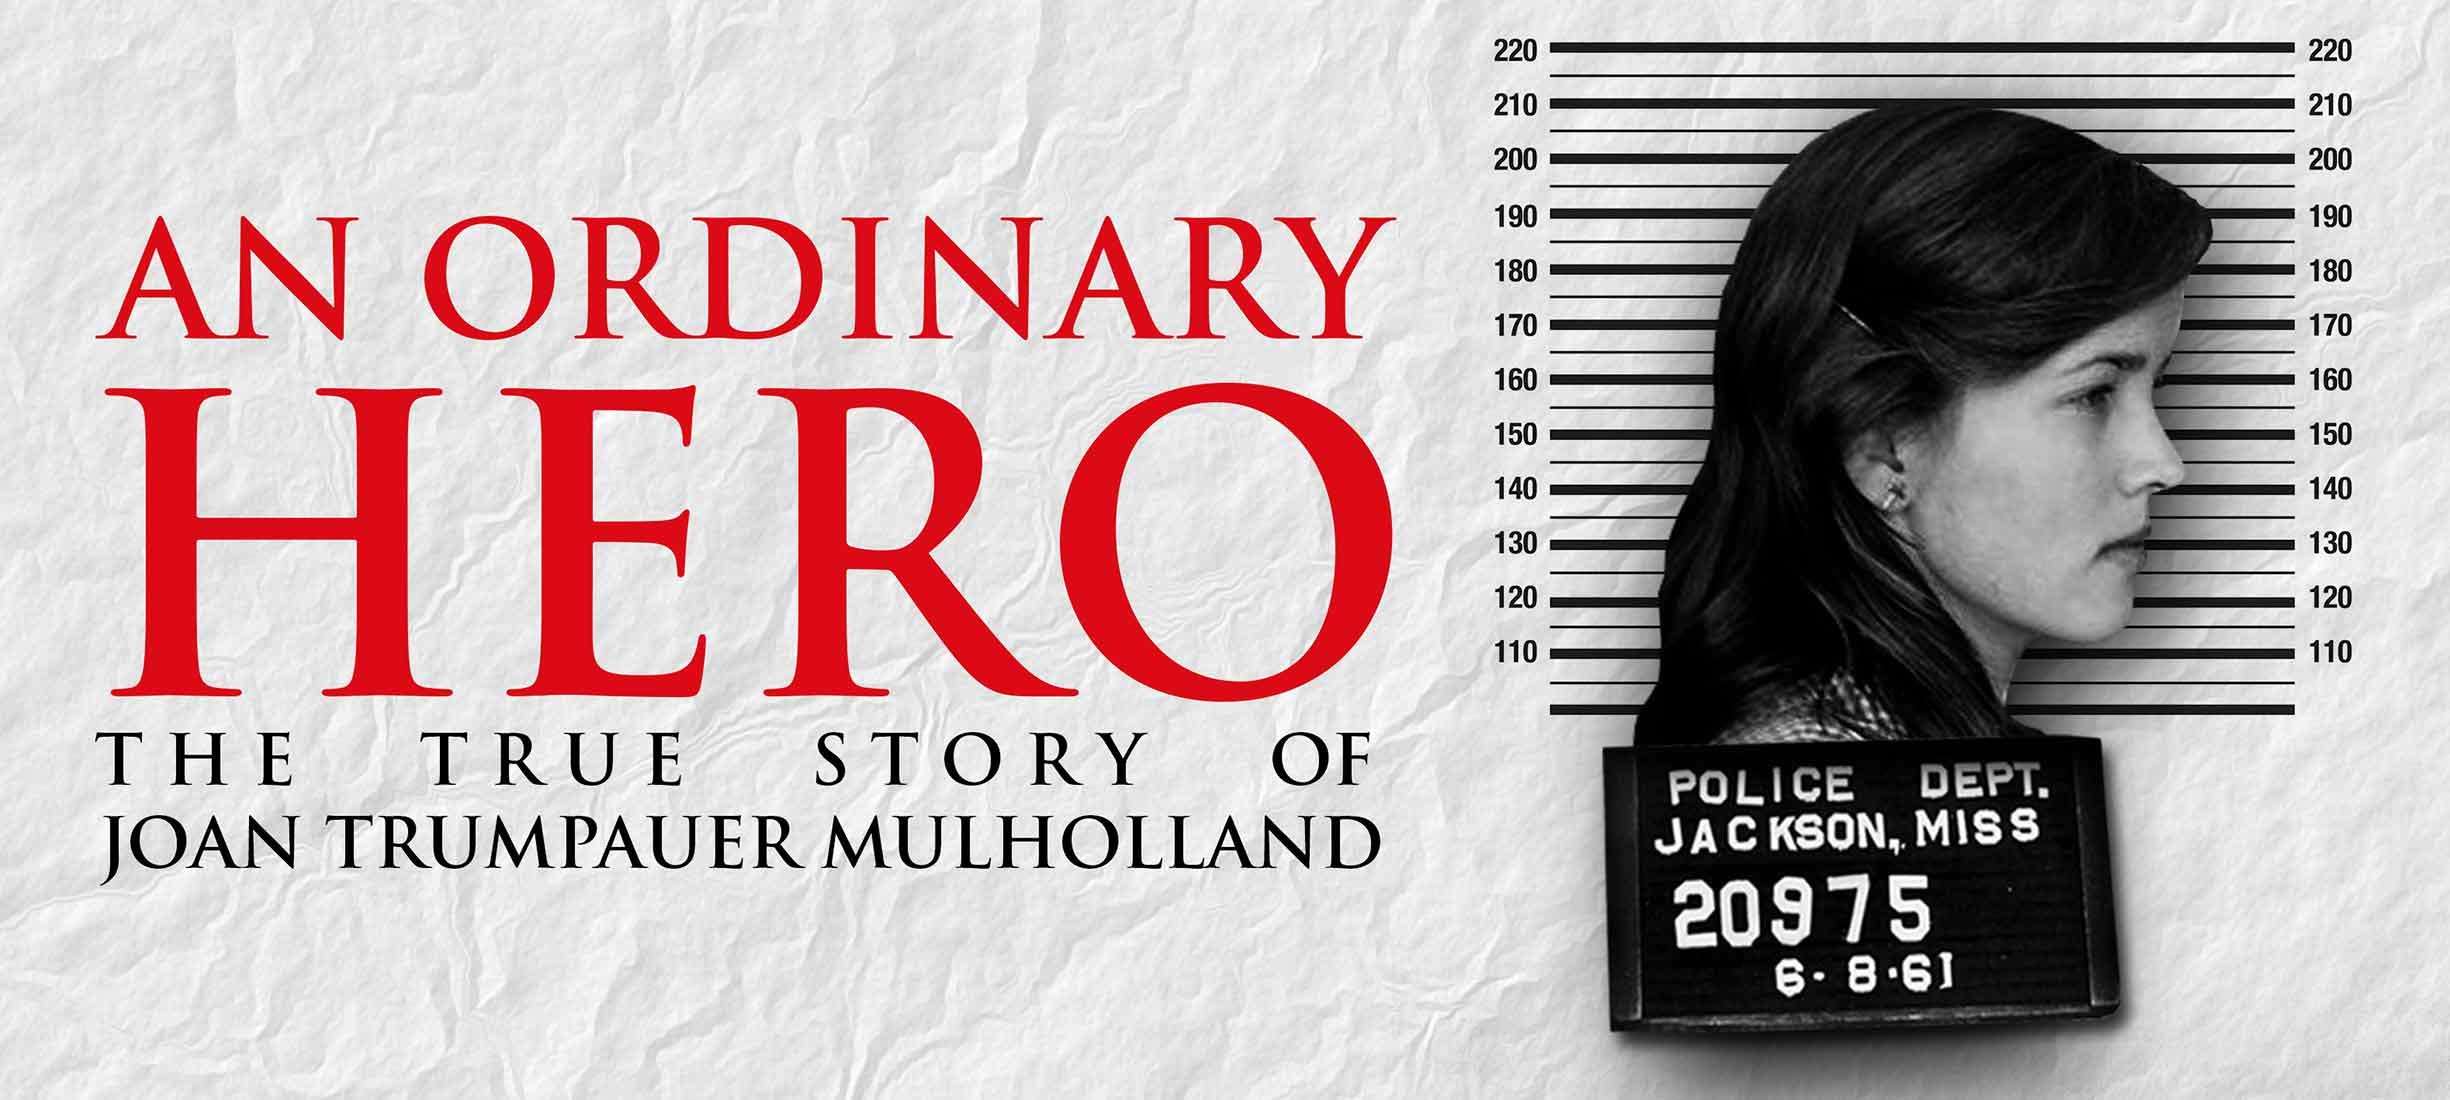 An Ordinary Hero title banner